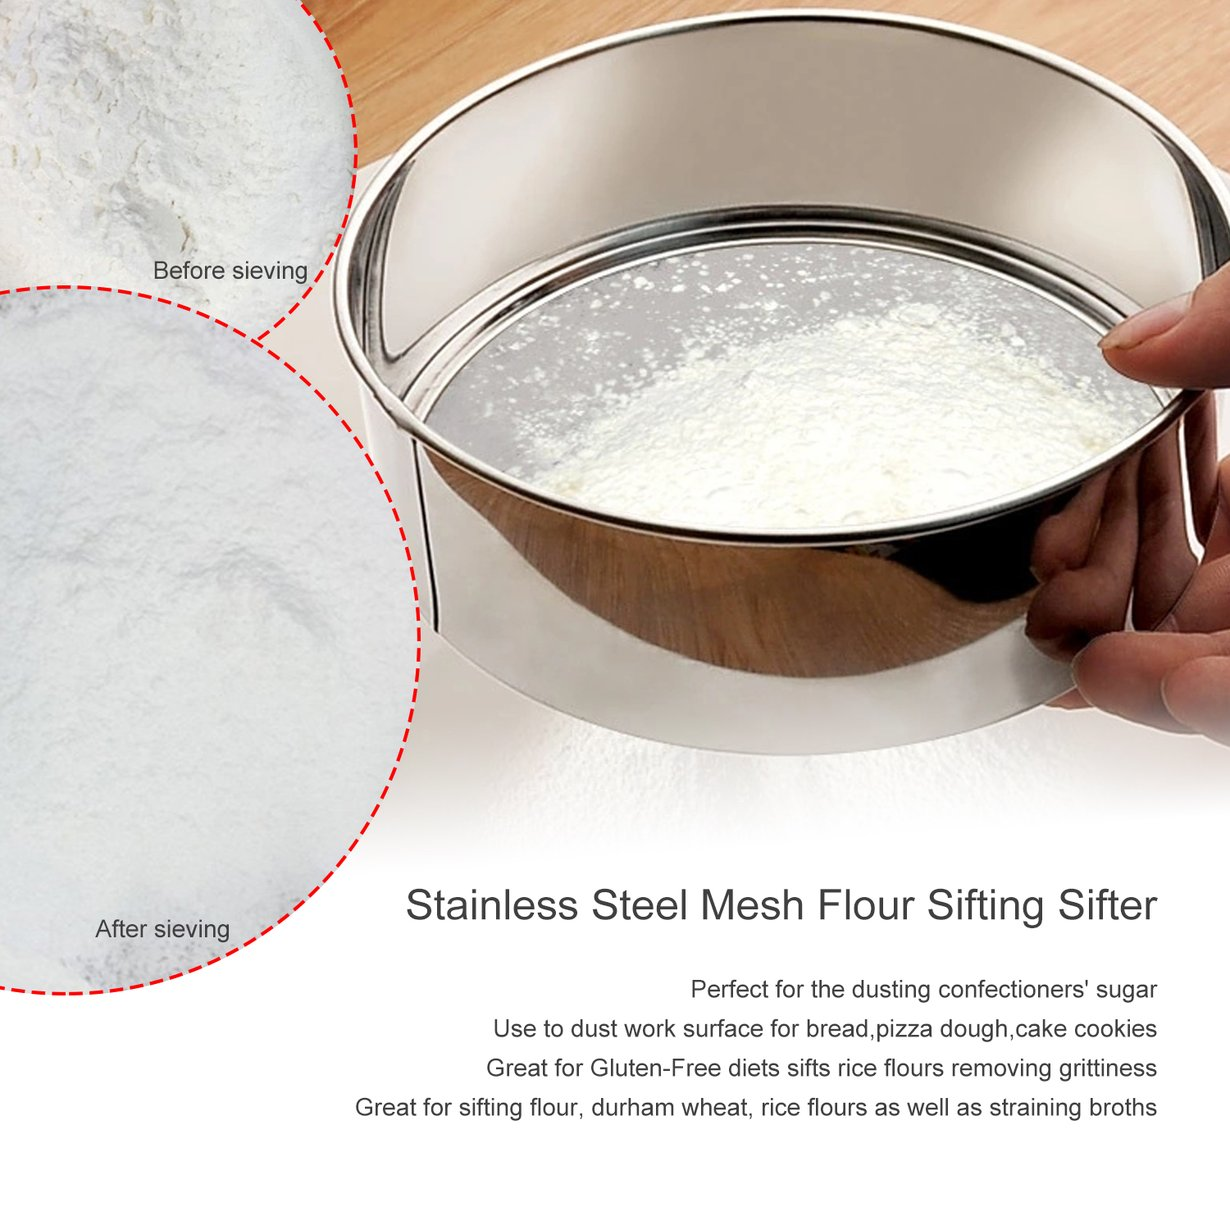 New Upgraded PREUP Stainless Steel Mesh Flour Sifter Mechanical Baking Icing Sugar Shaker Sieve Strainer Mesh... by